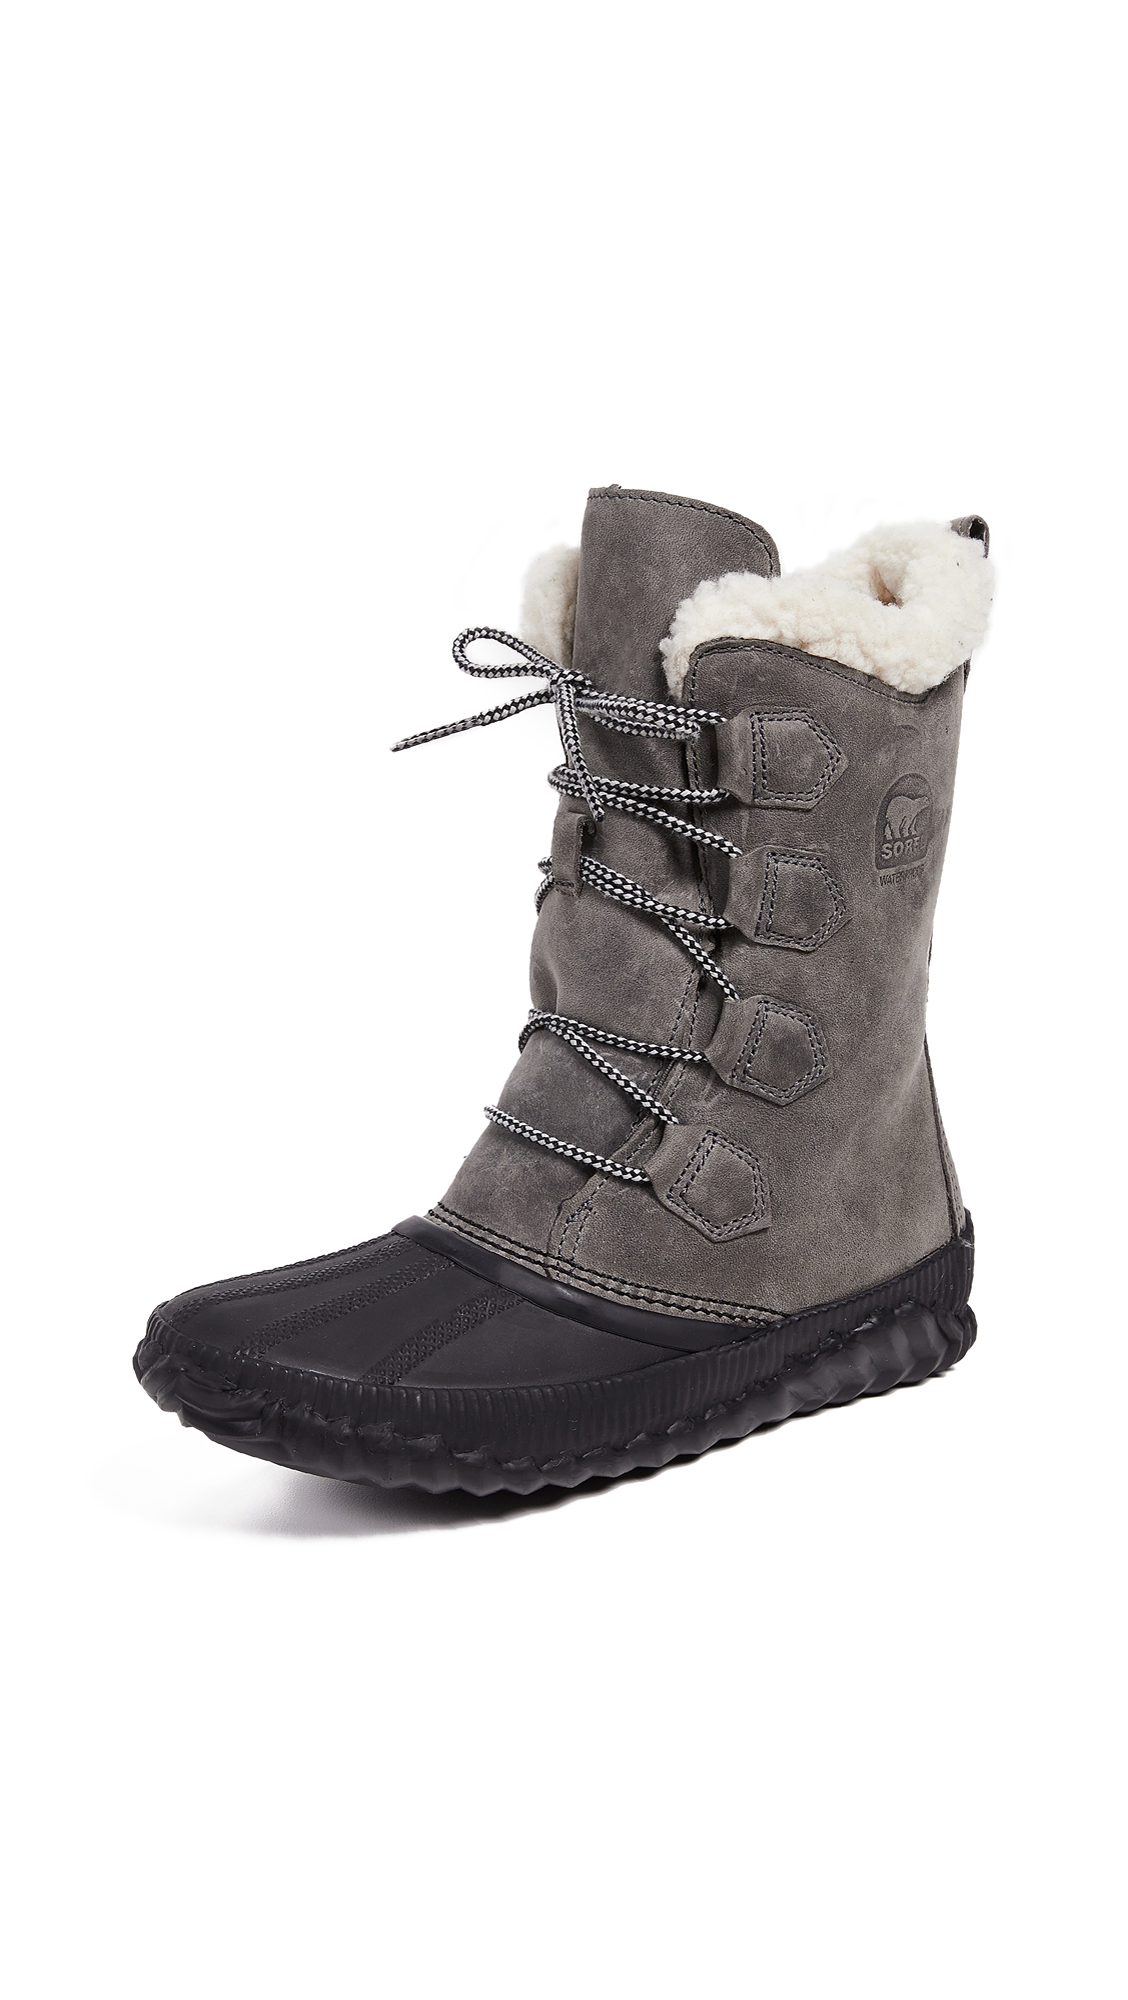 Sorel Out N About Plus Tall Boots - Quarry